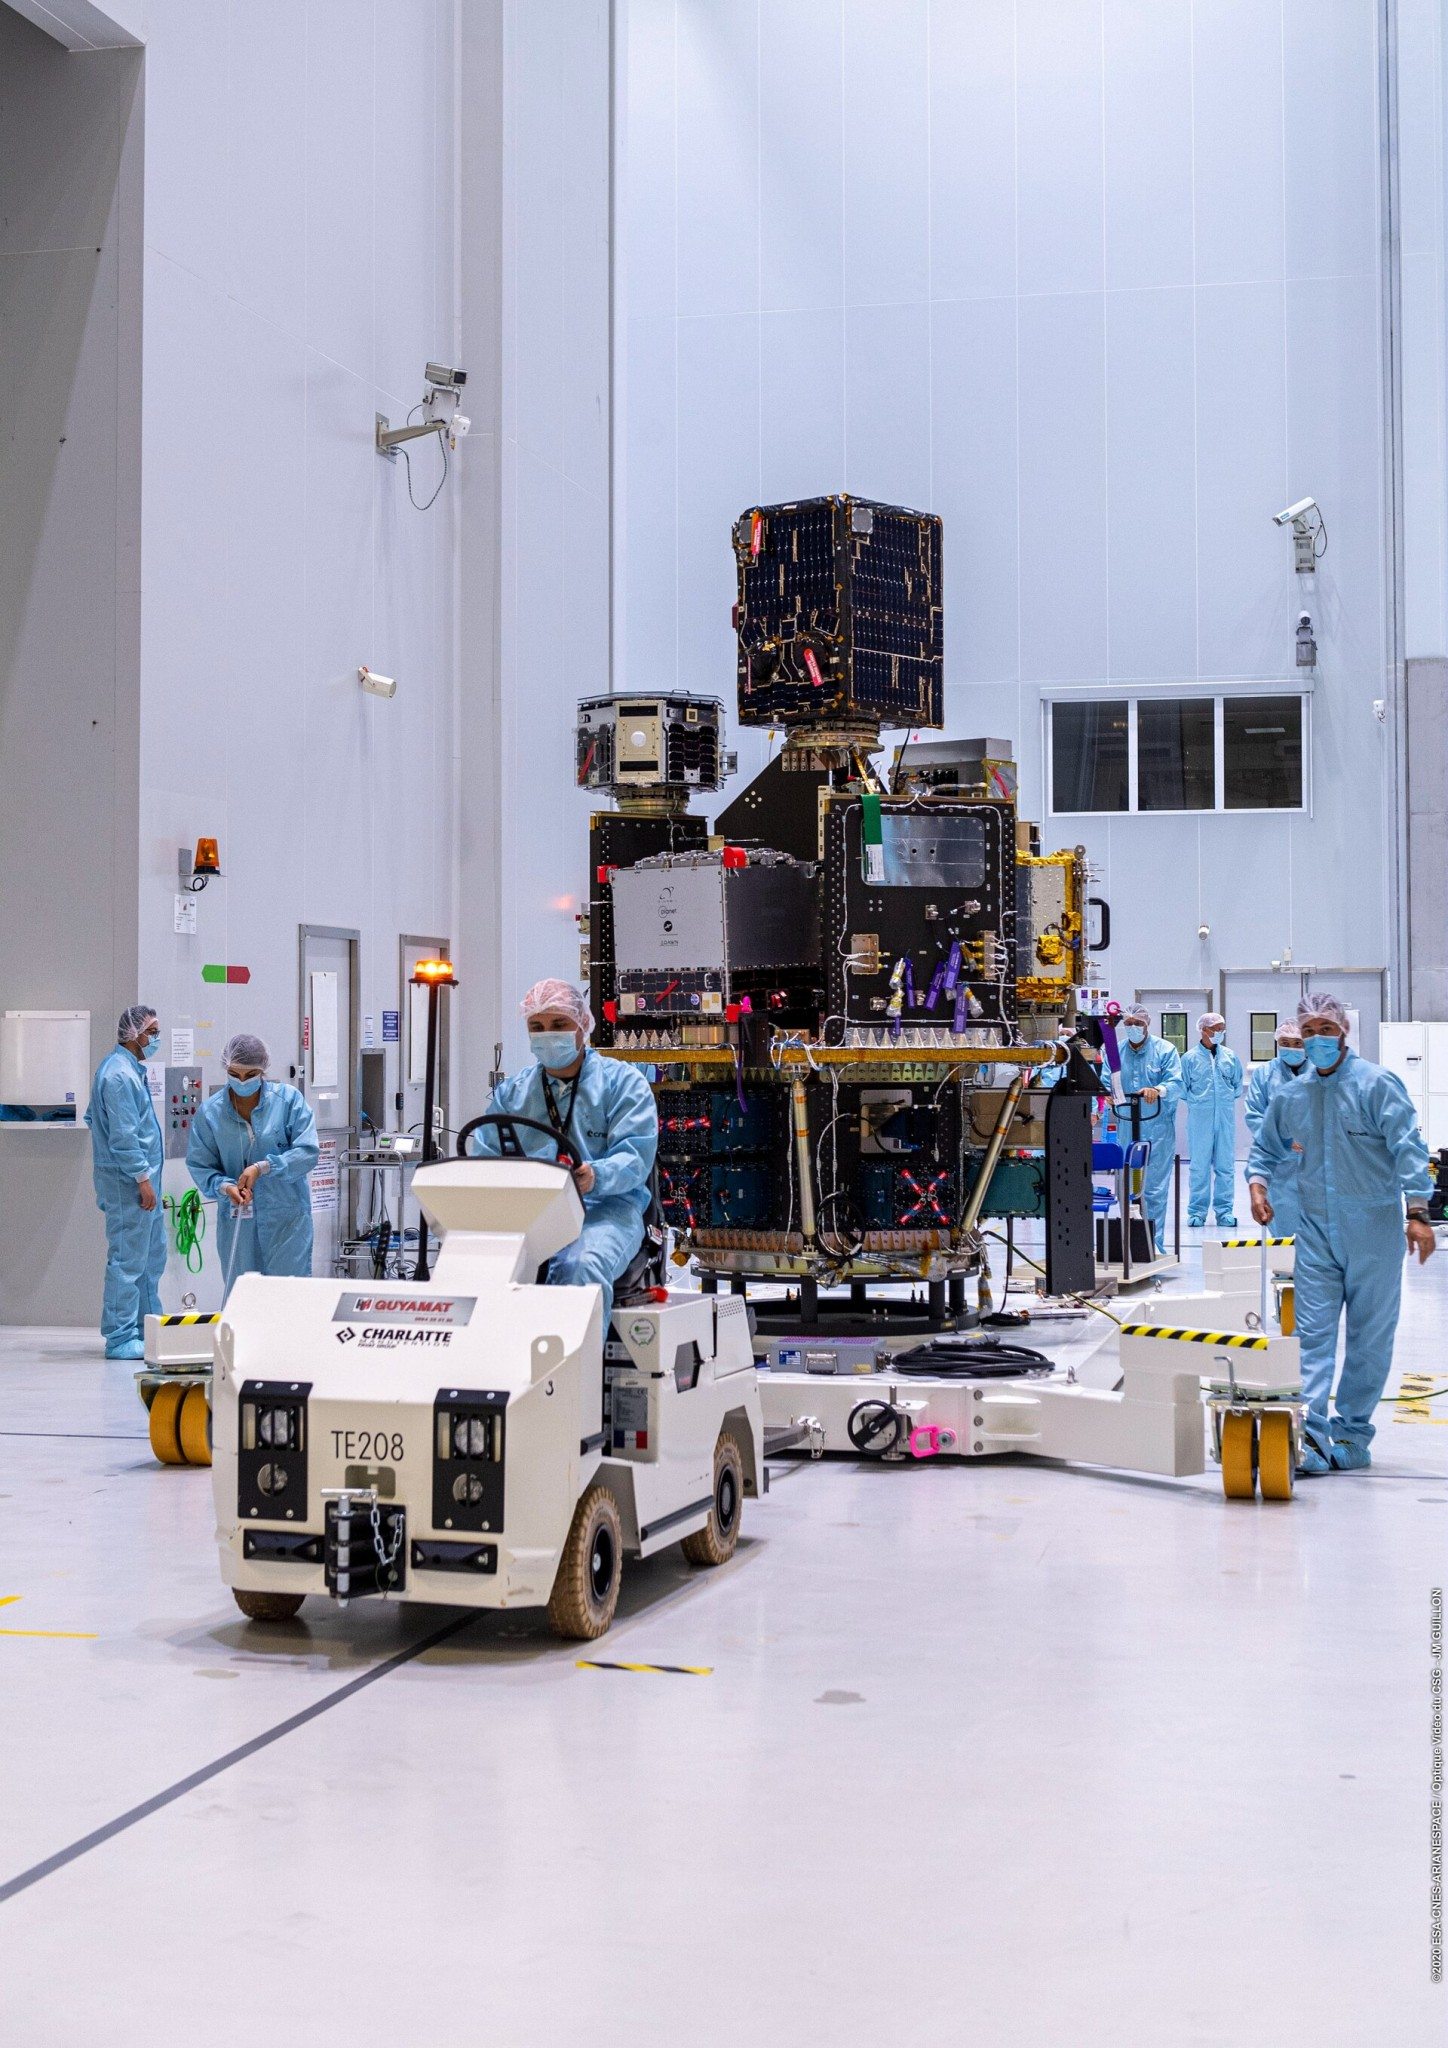 SSMS payload dispenser transfer at Europe's Spaceport